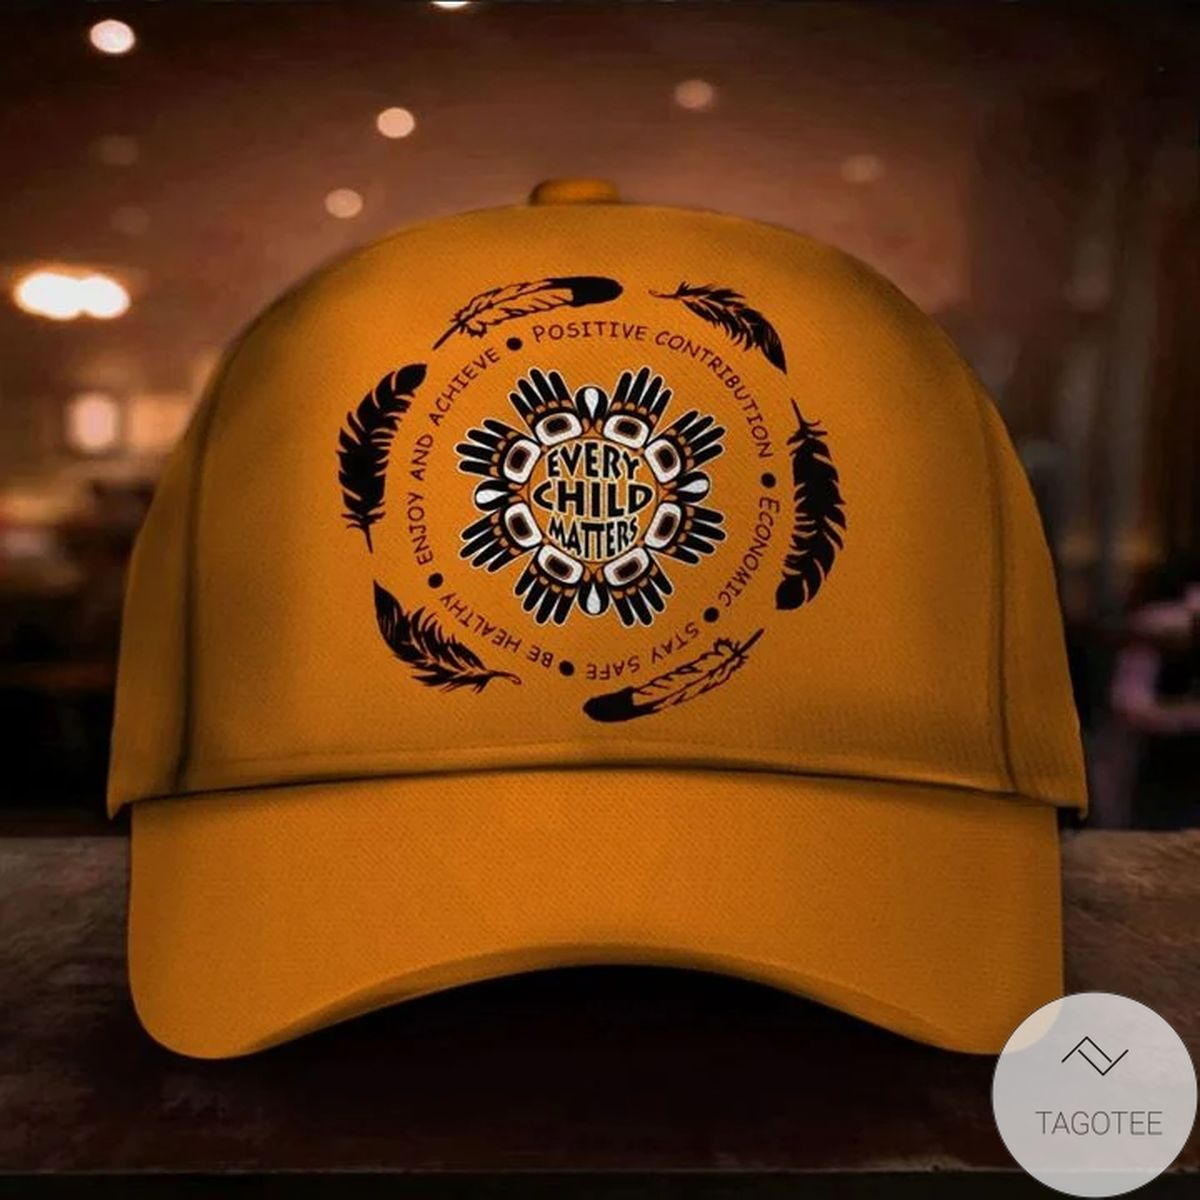 Every Child Matters Hat Orange Shirt Day 2021 Holidays Hats Best Gift For Brother In Law